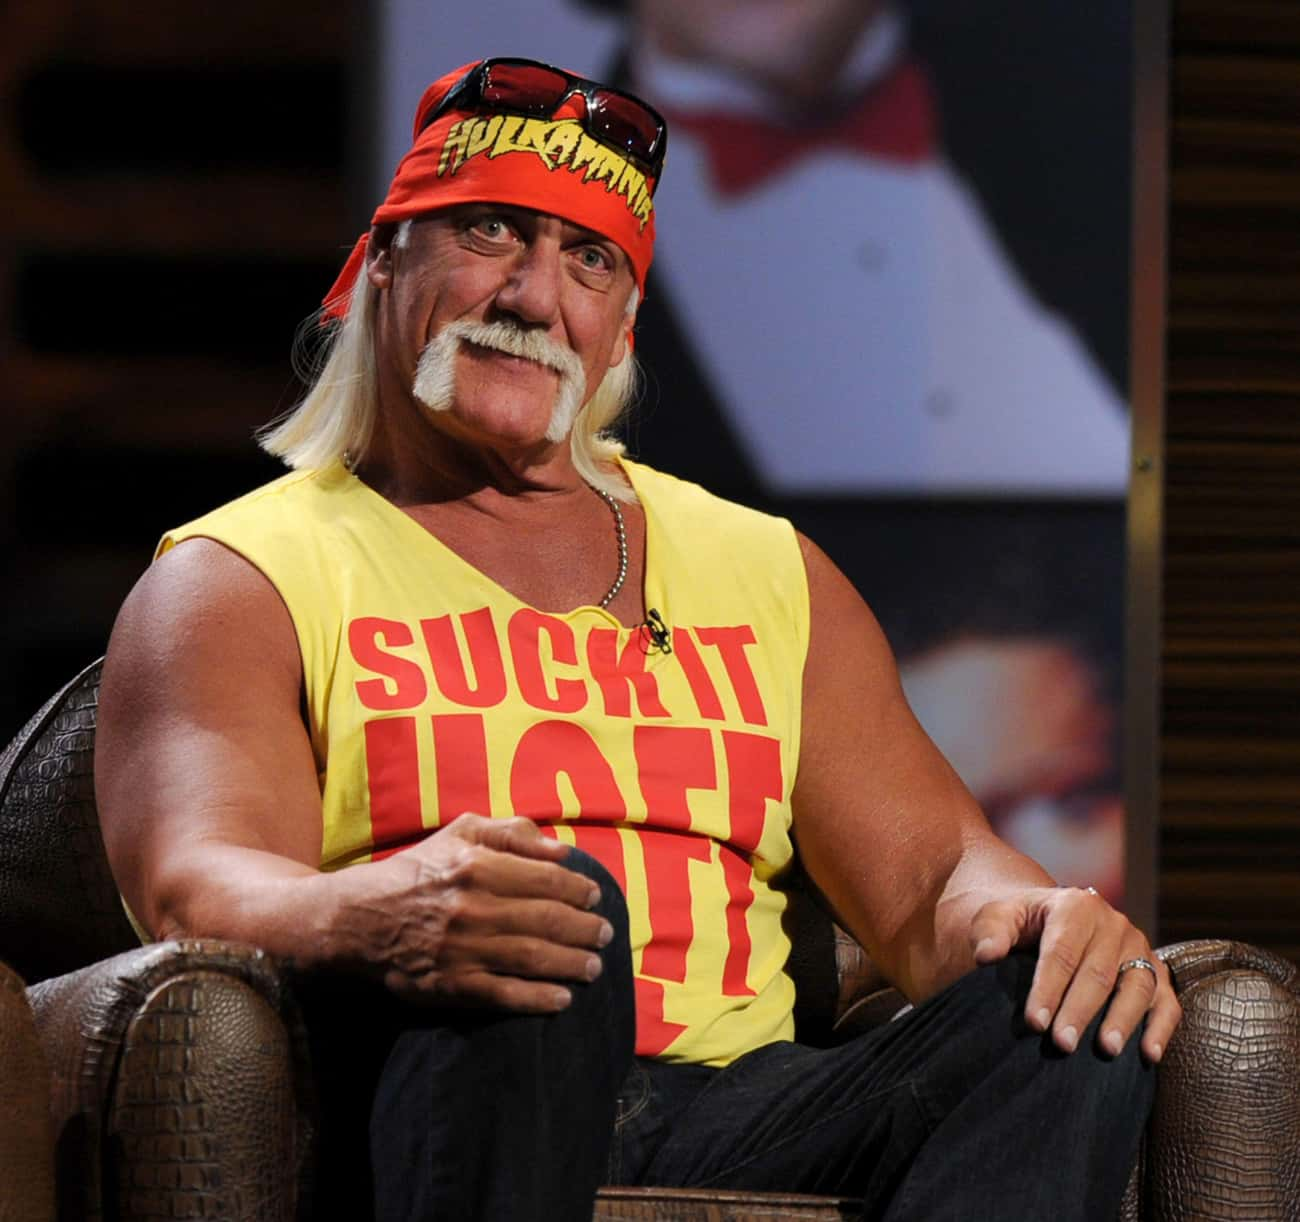 When Hulk Hogan Retweeted an Inappropriate Tweet About His Own Daughter